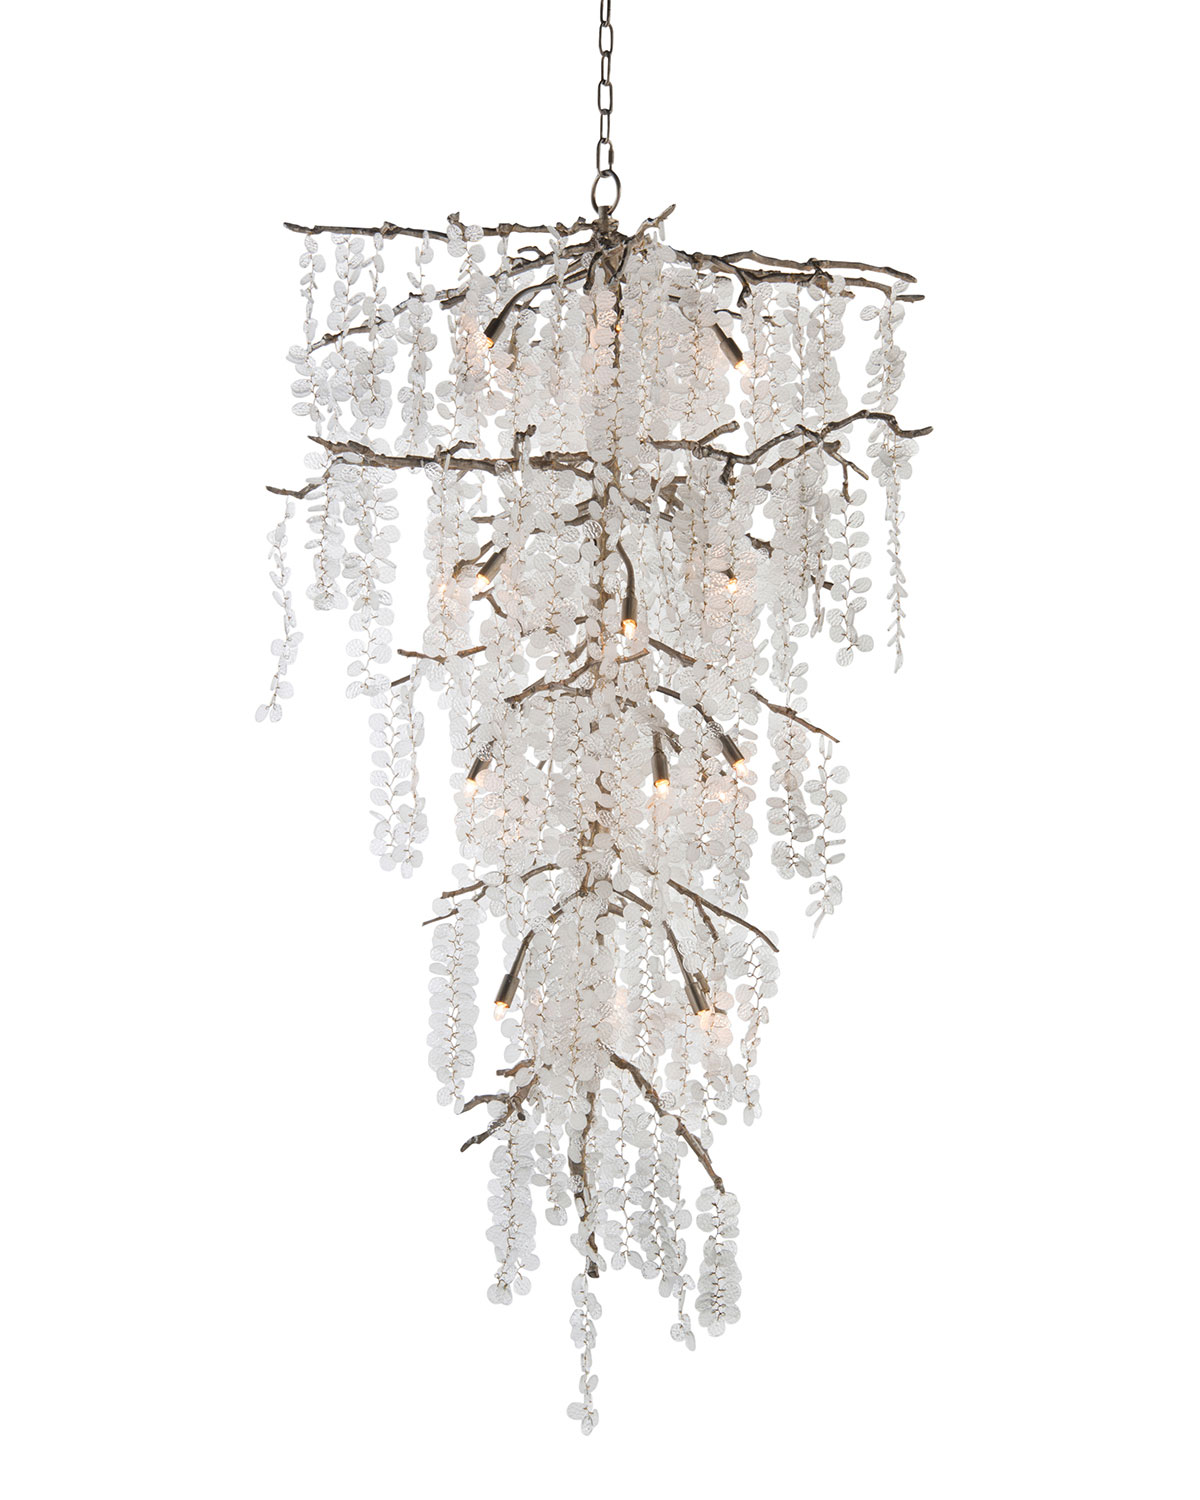 John-Richard Collection Shiro Noda 21-Light  Glass Chandelier